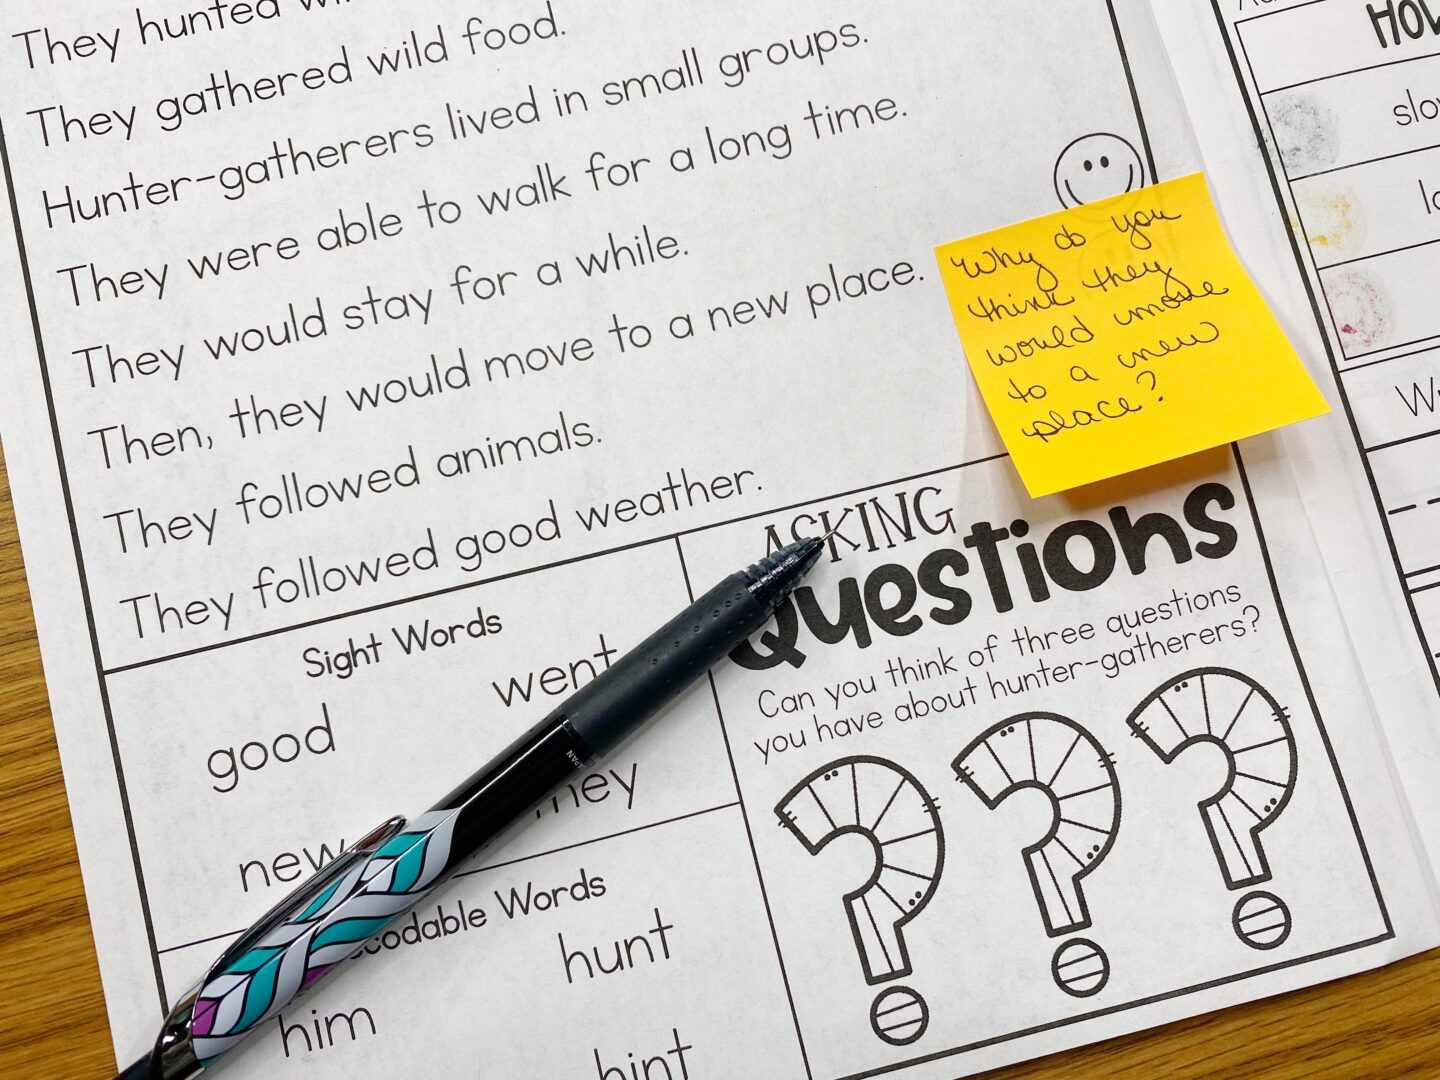 Image of Primary Gal's Resource Room Reading Series with a Pen and a Post-It Note. On the Post-It Note it says Why do you think they would make it to a new place?